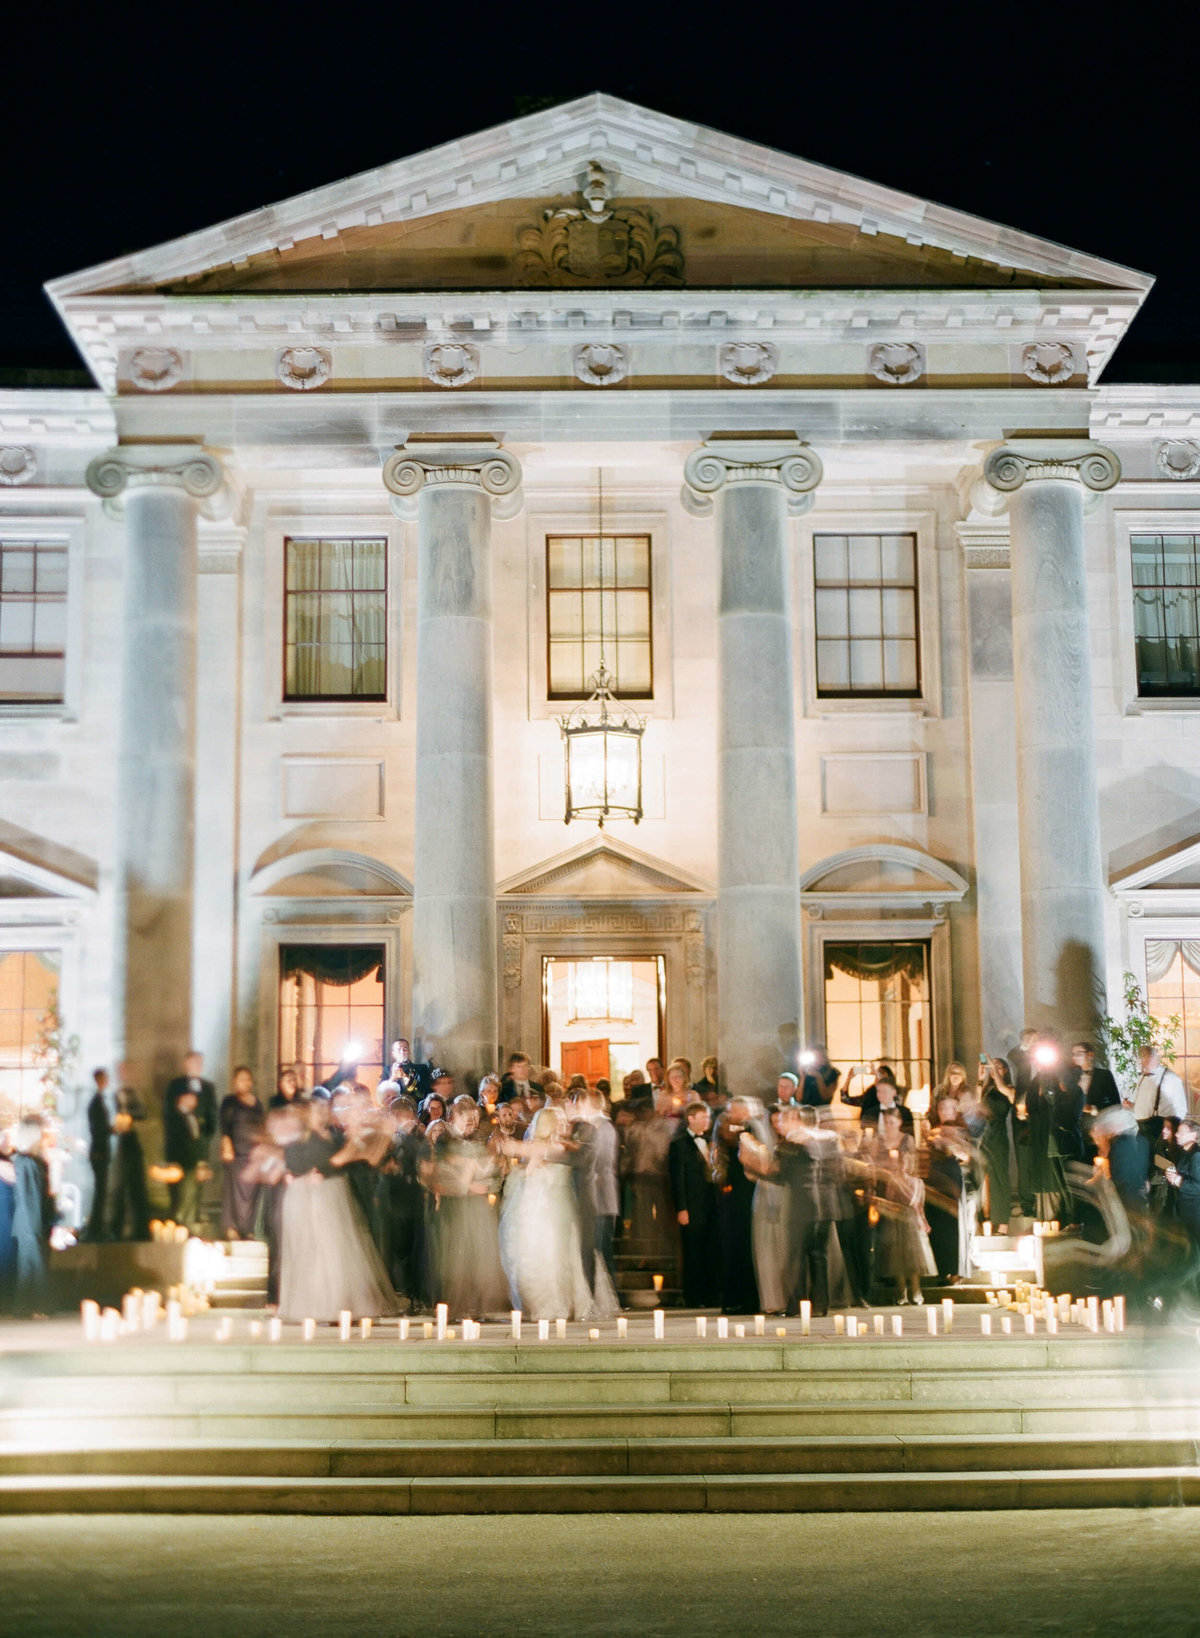 10-KTMerry-weddings-reception-Ballyfin-Ireland-exterior